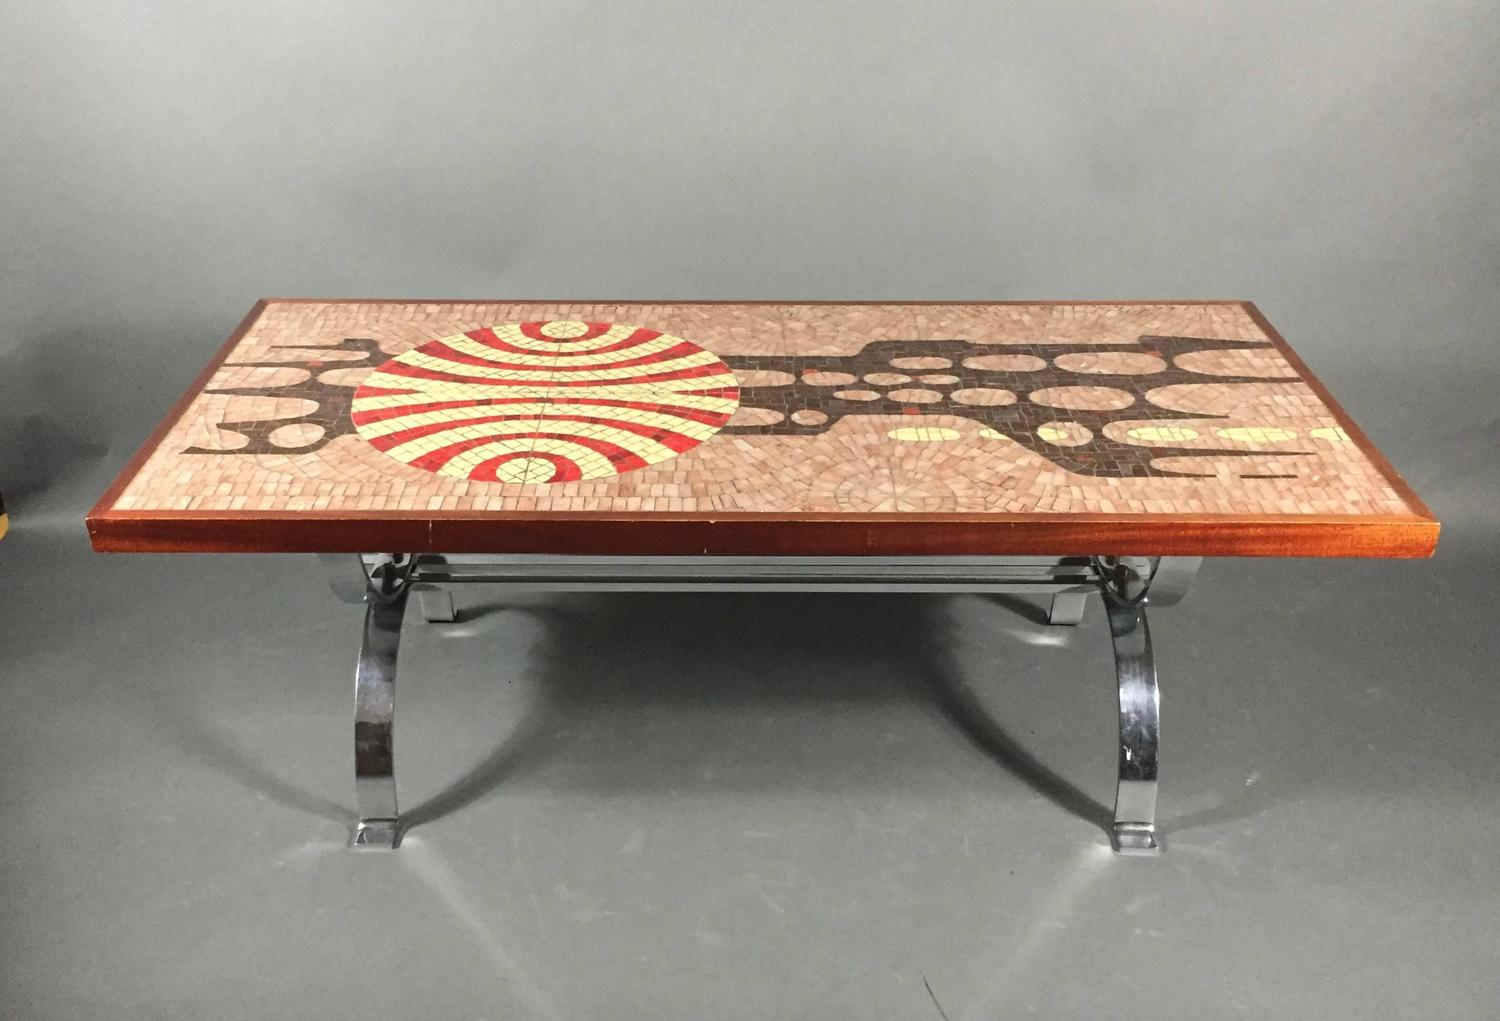 Artisan Mosaic Tile And Chromed Steel Coffee Table Germany 1970s At 1stdibs